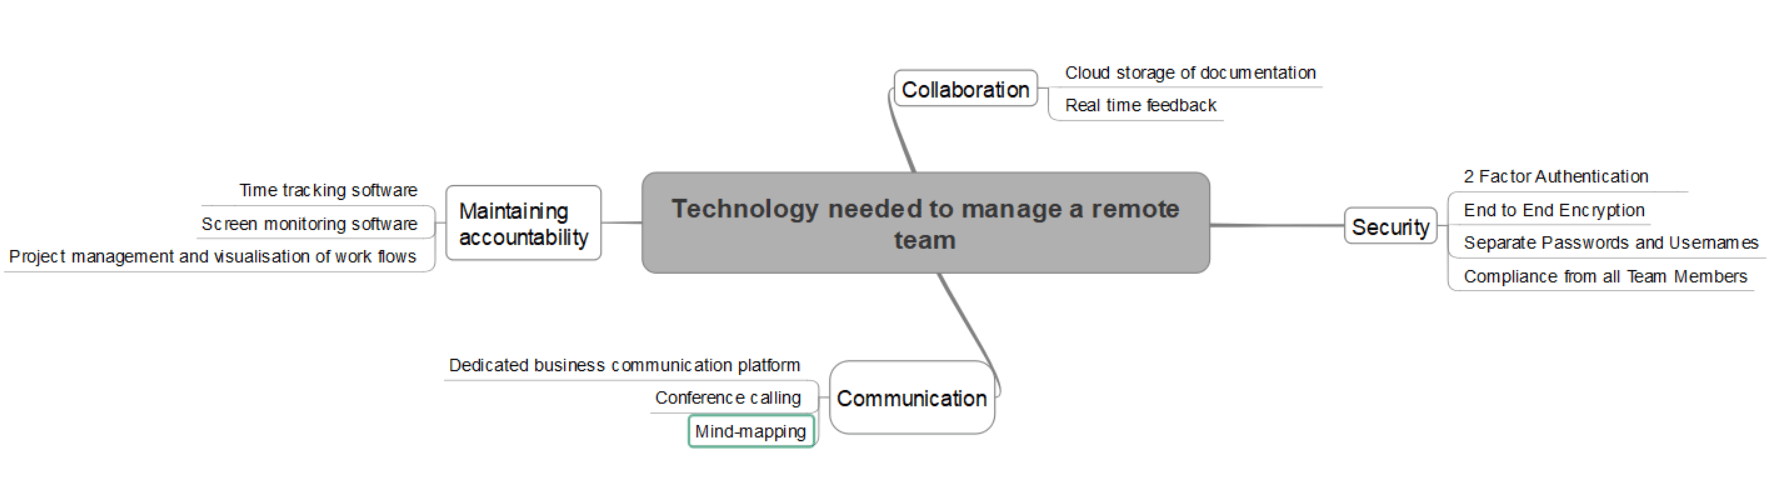 mind map on technology needed to manage a remote team work